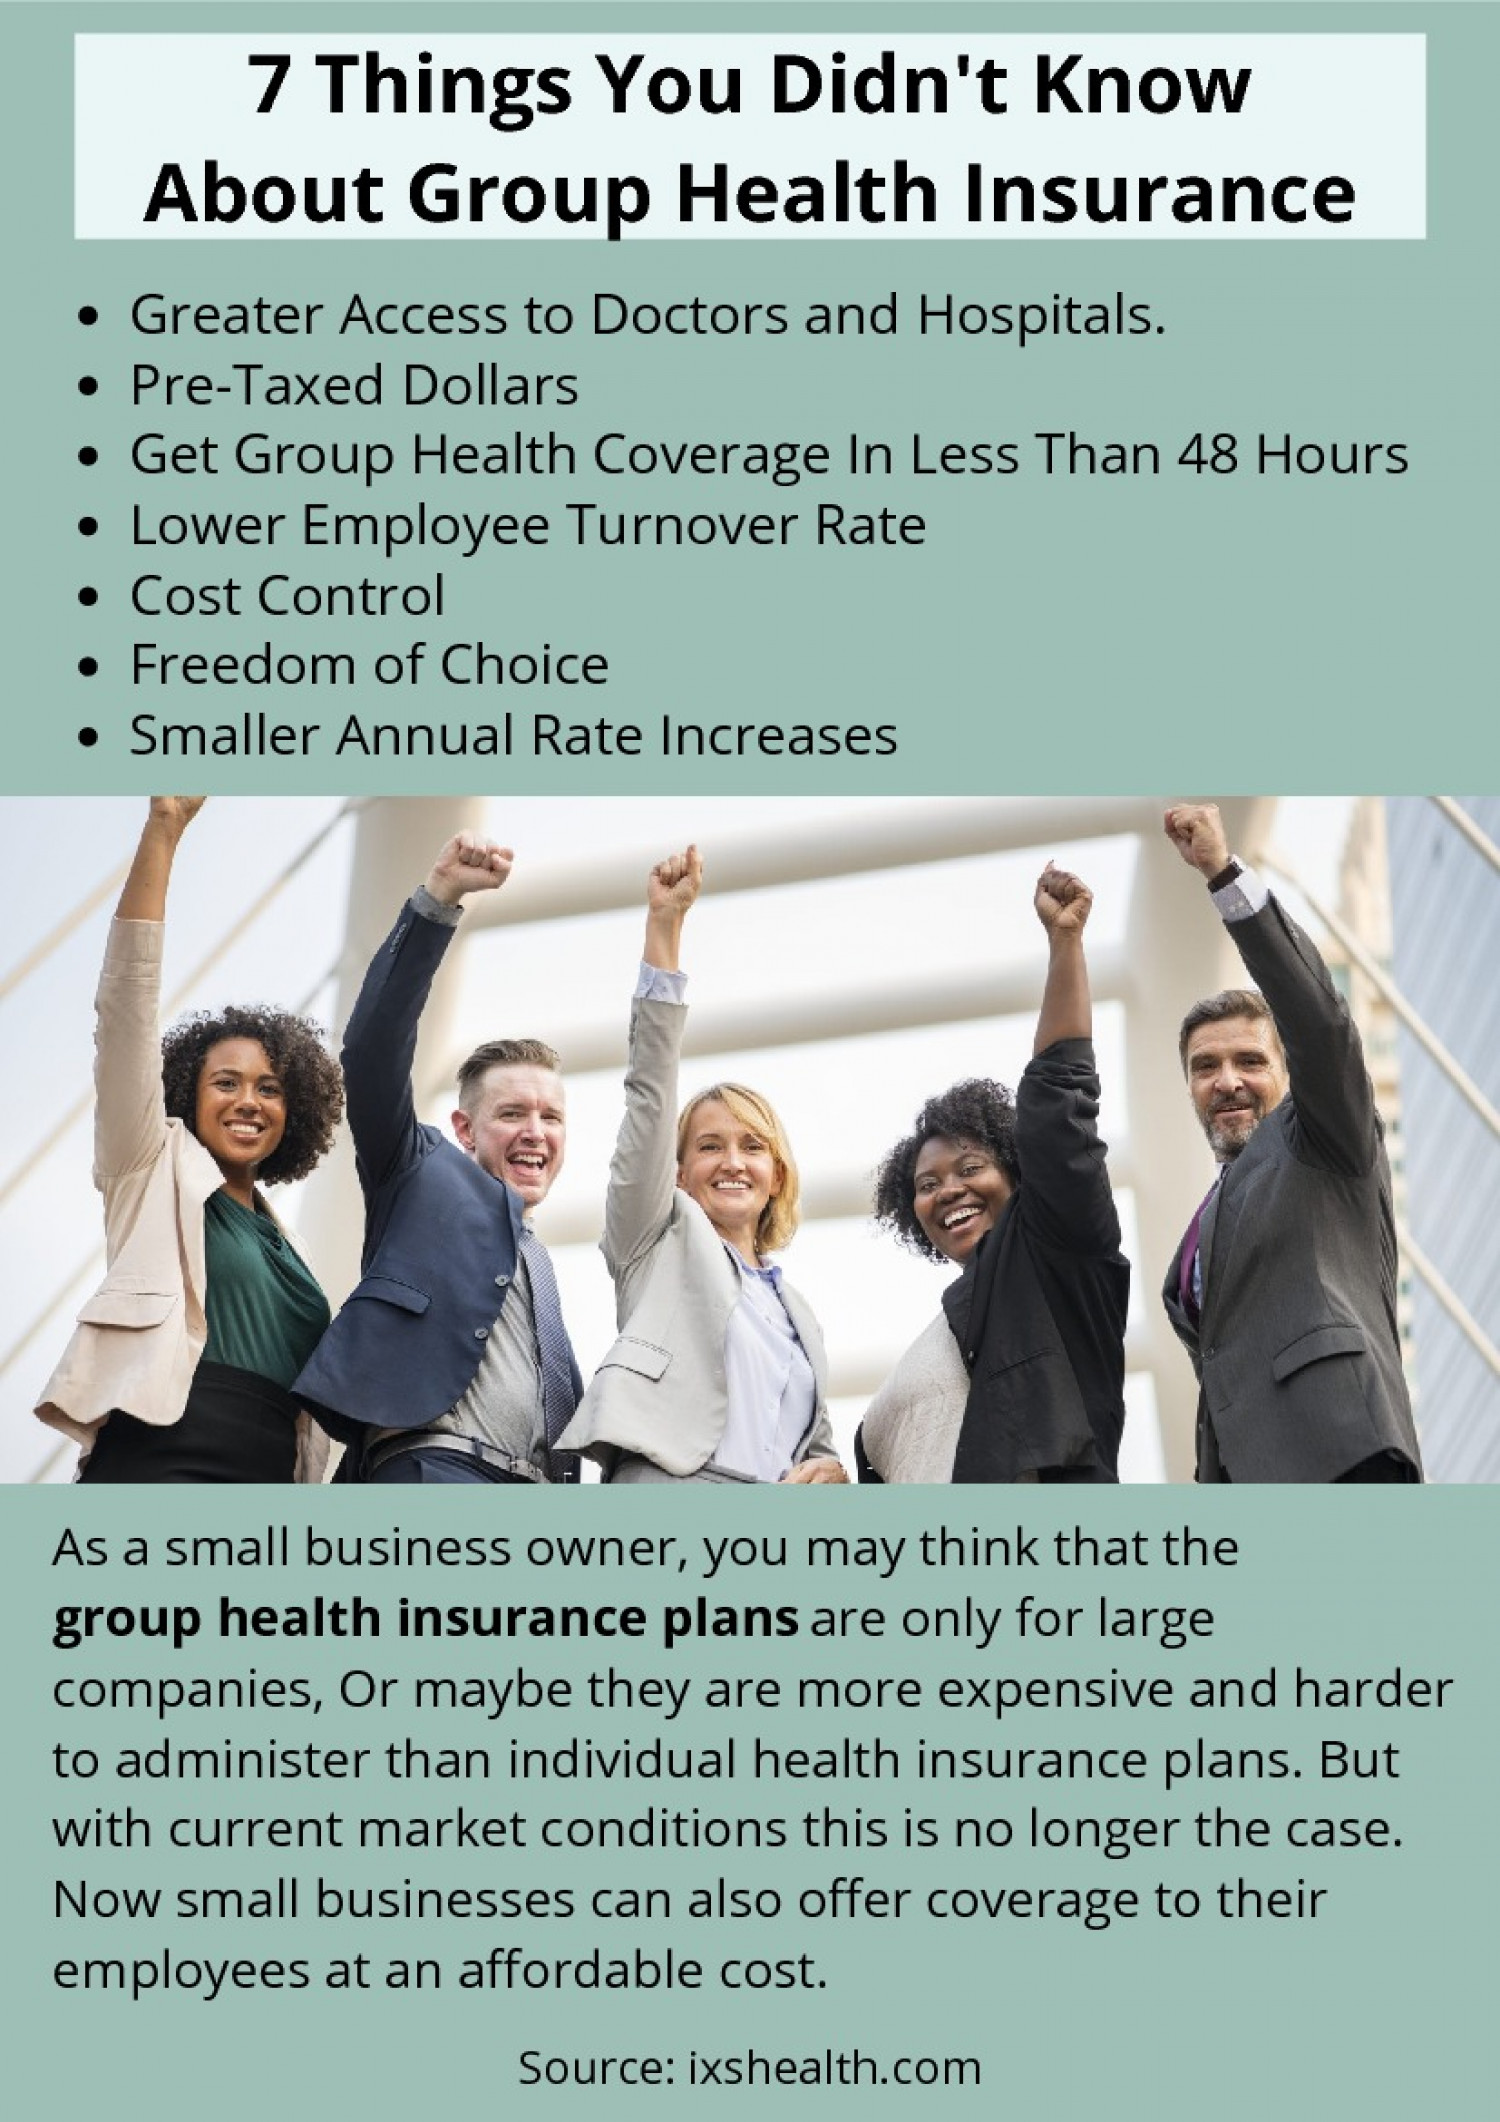 7 Things You Didn't Know About Group Health Insurance Infographic